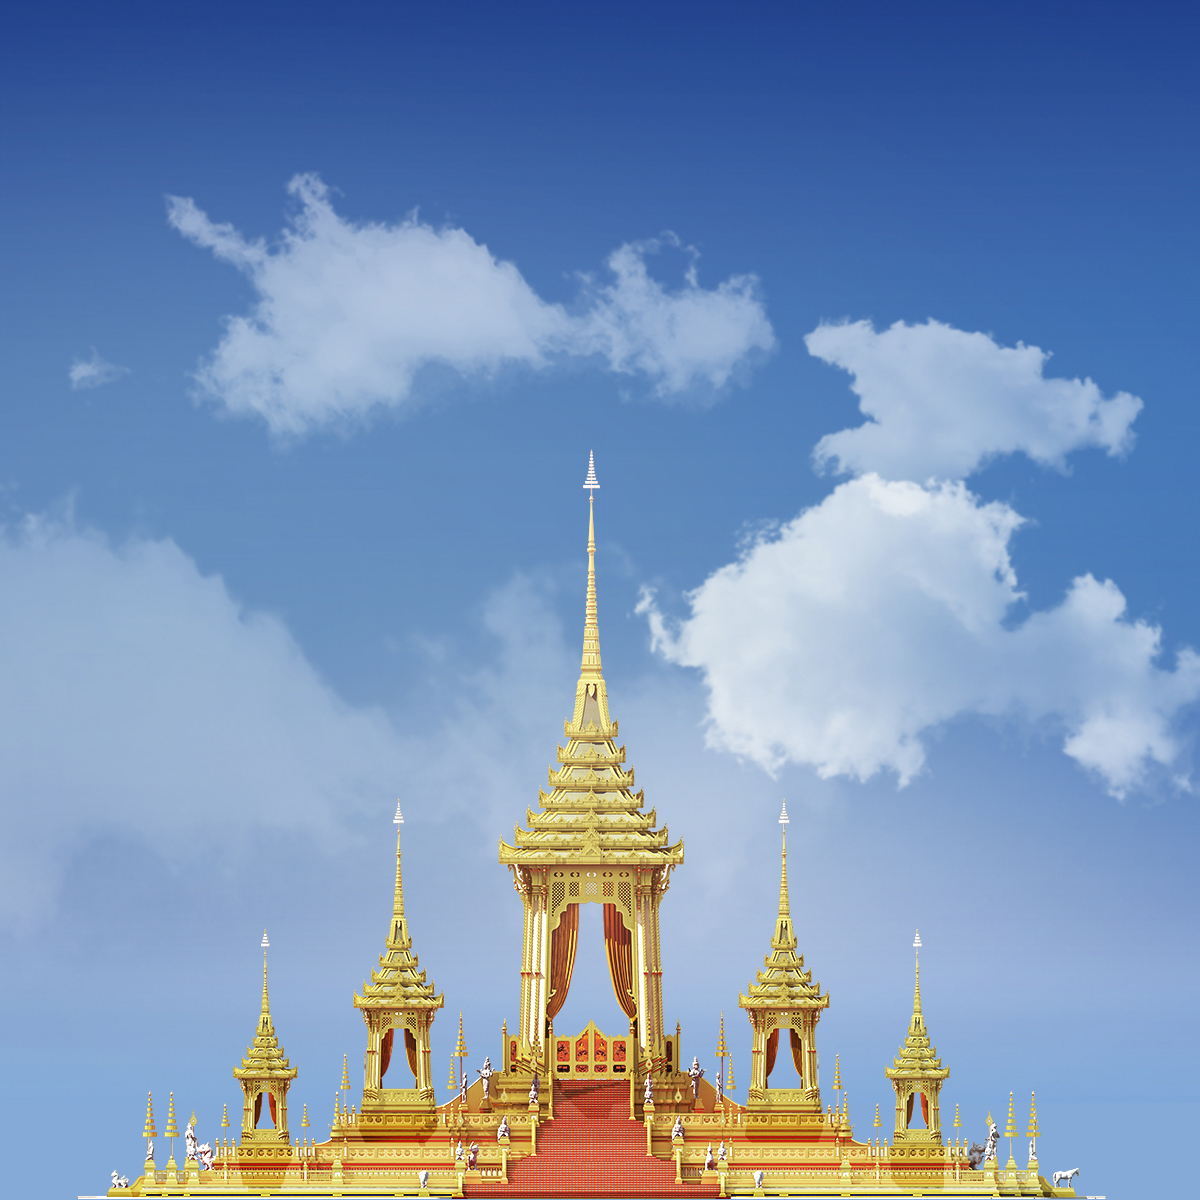 Phra Meru Mas (the royal crematorium) for the late King Bhumibol Adulyadej